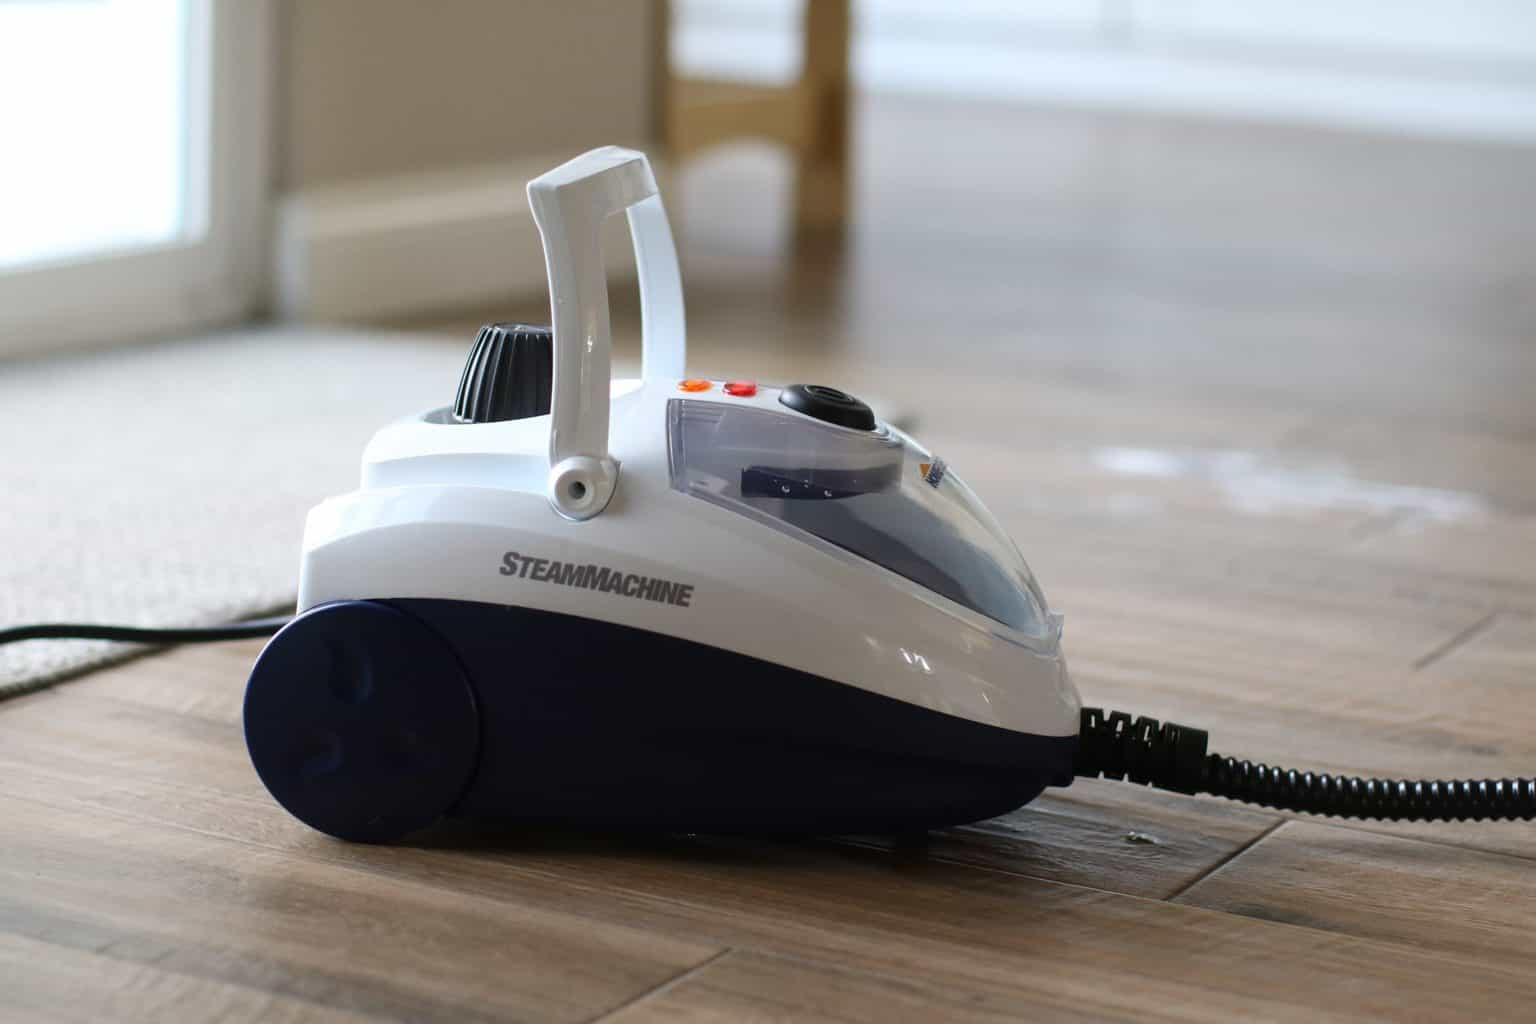 Steam cleaner suitable for a mattress